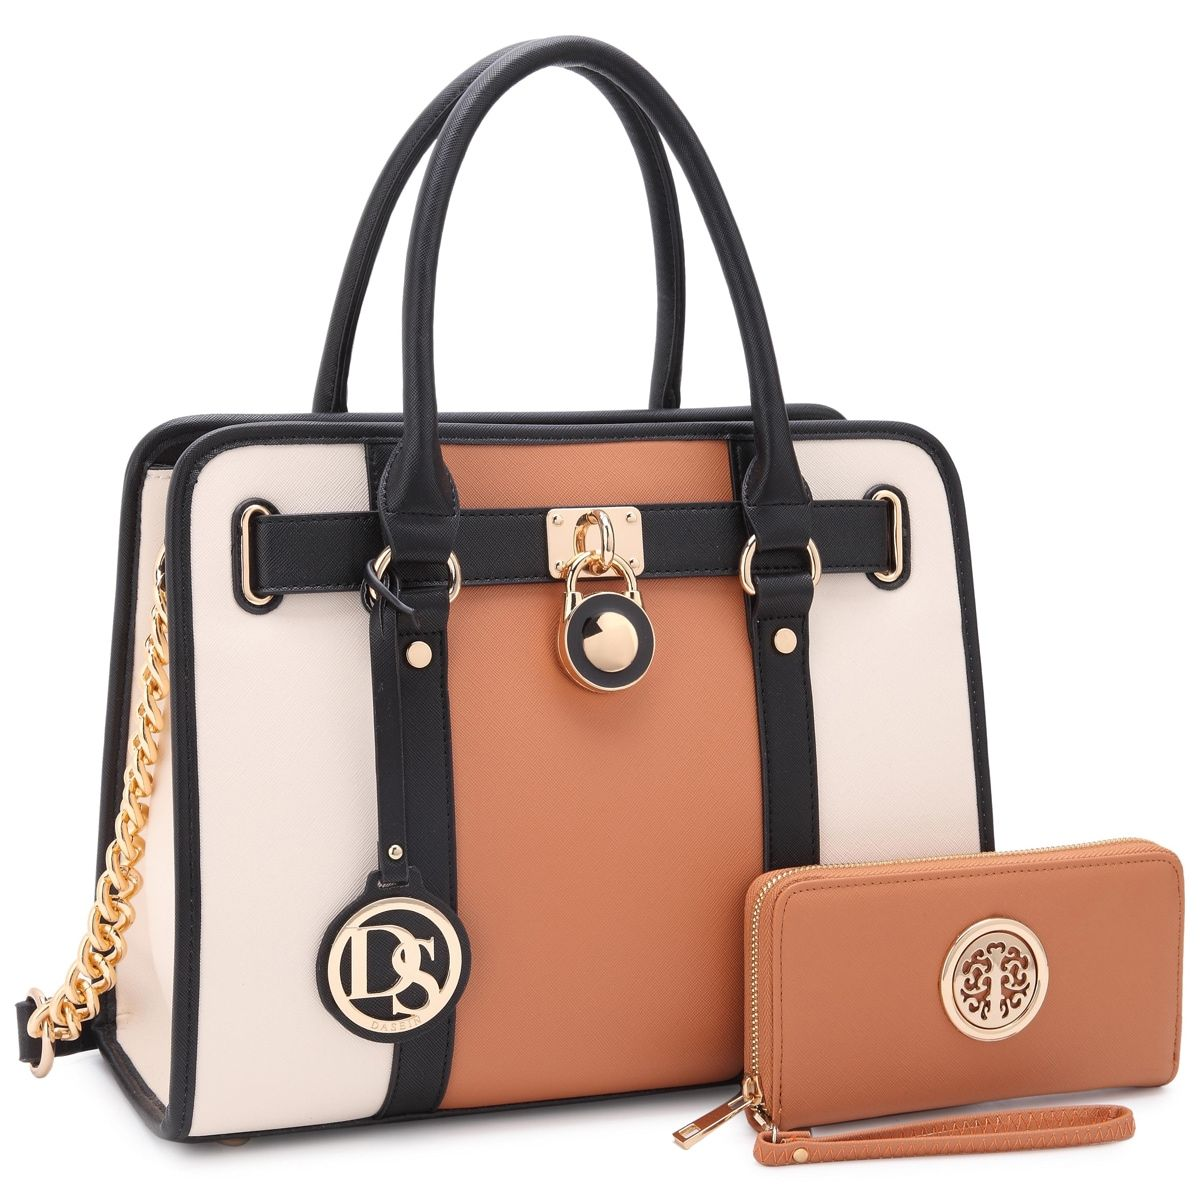 0672cc7e4fa Dasein Large Two-Tone Gold Chain Strap Satchel Handbag with Matching ...